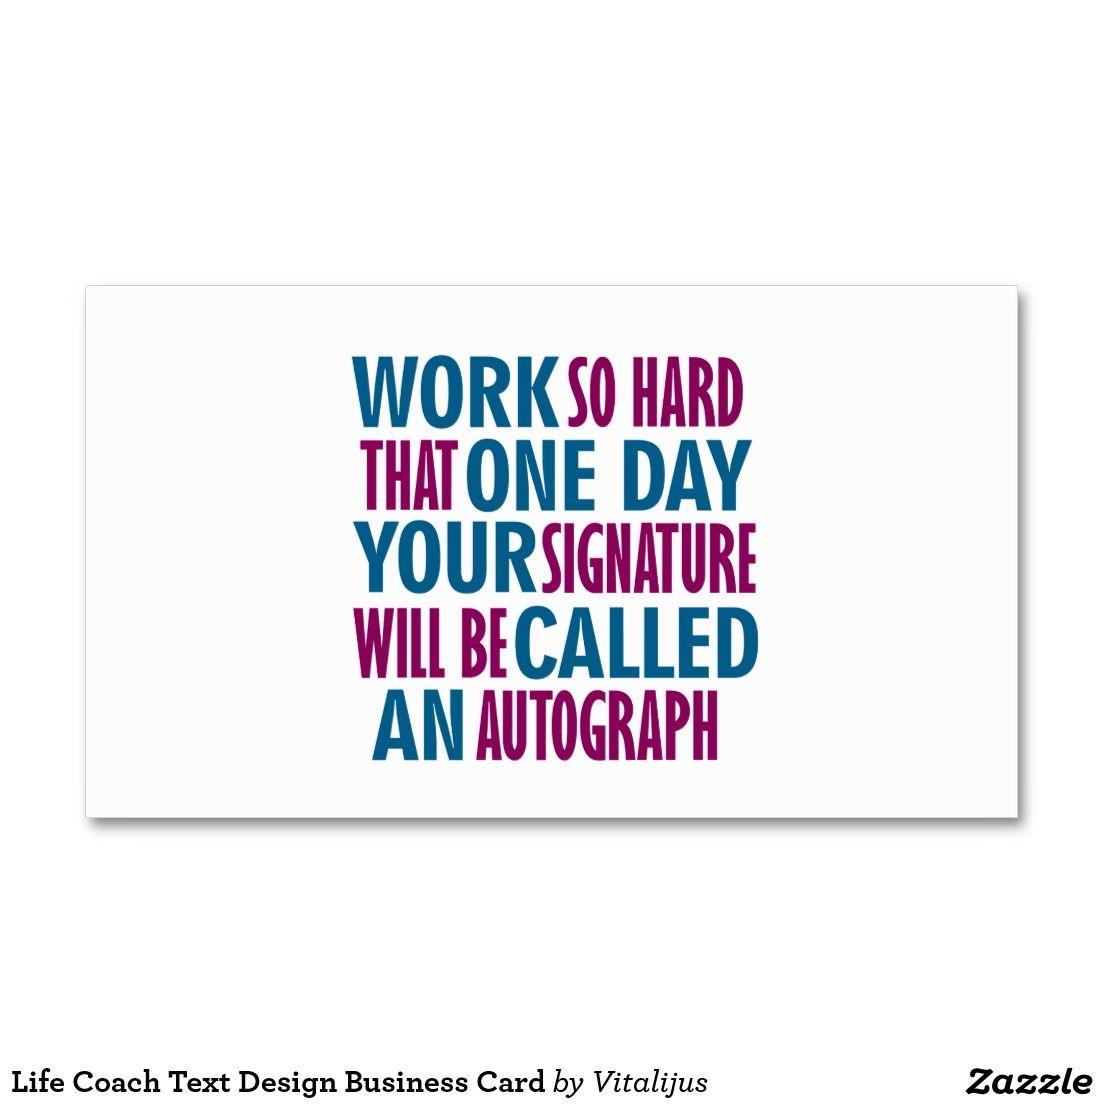 Life Coach Text Design Business Card | Beautiful Phrases | Pinterest